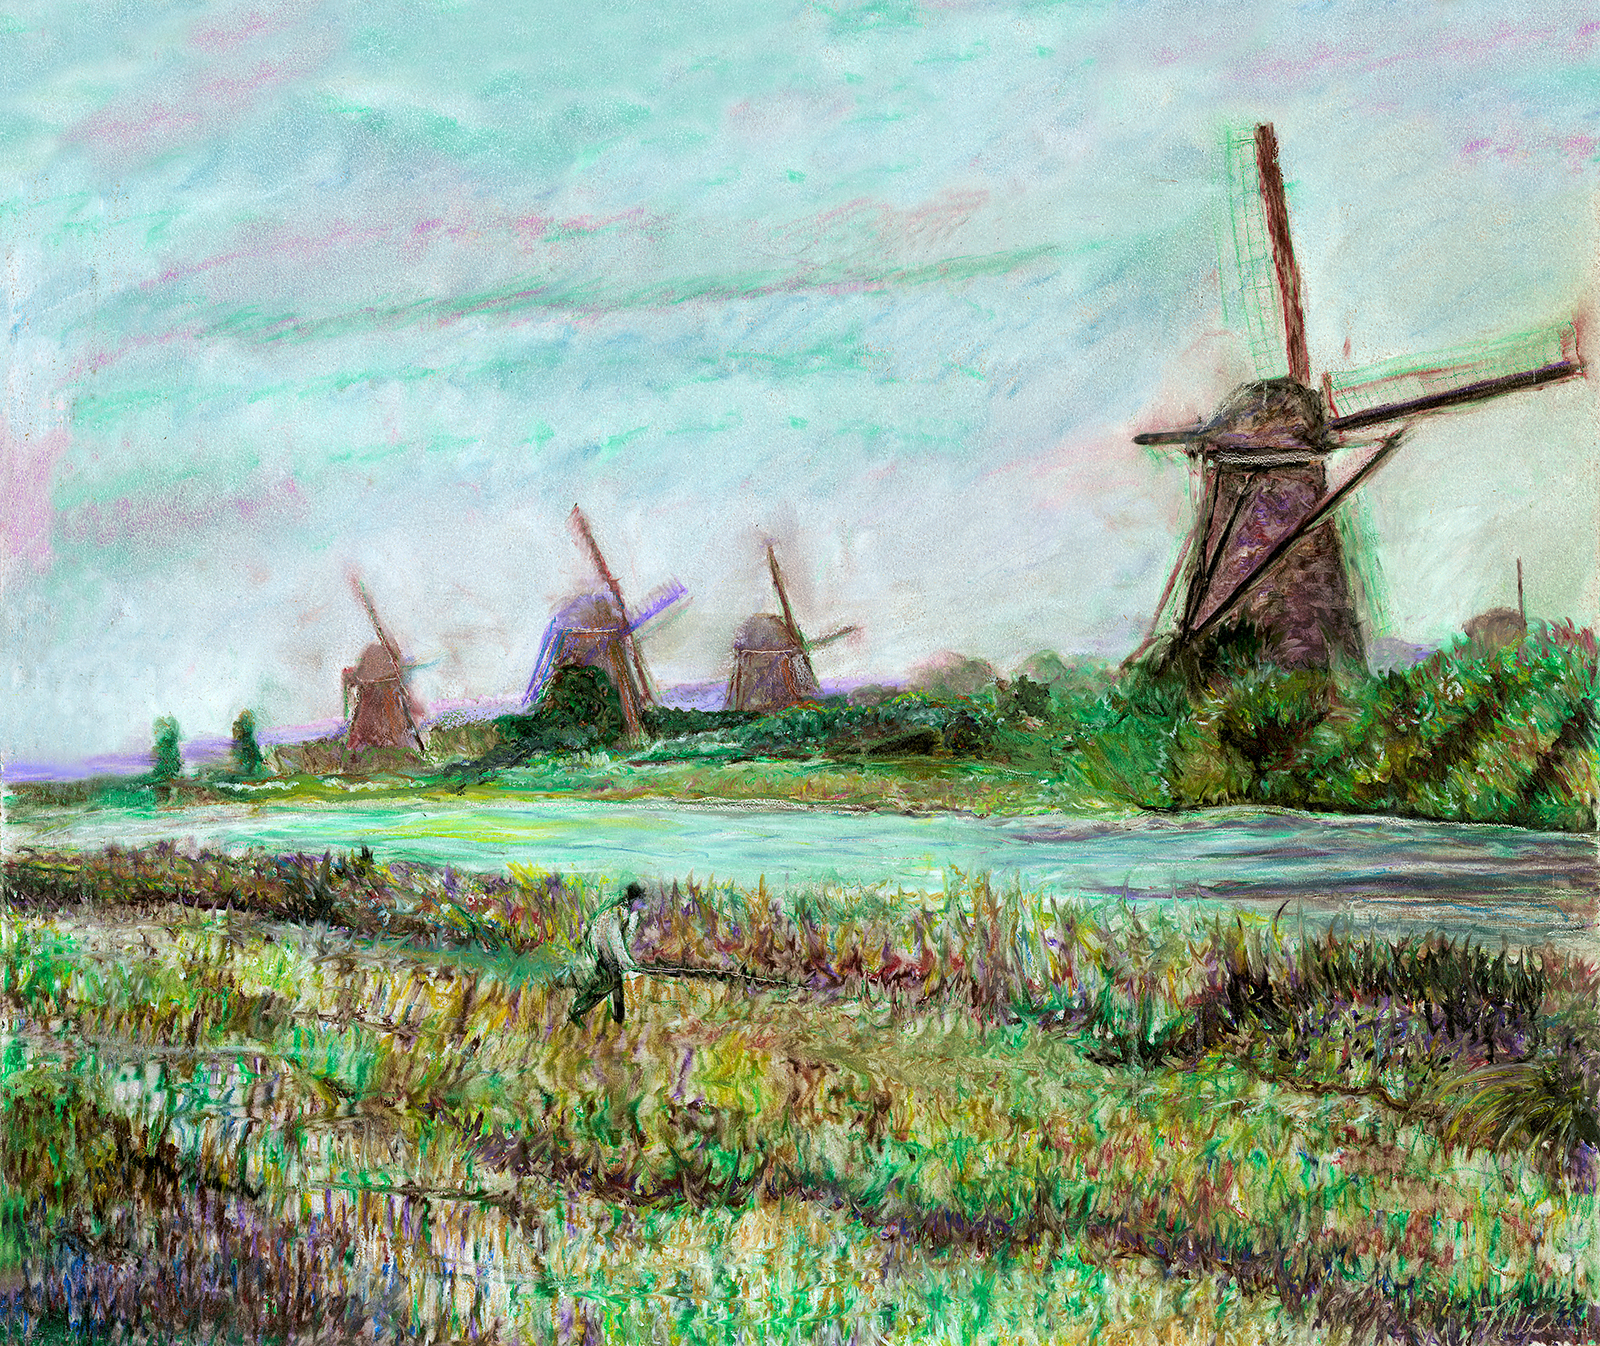 """""""Kinderdijk Windmills"""" - Oil Pastel, Private collection on Jim Lahnala Rick Wright.Giclee Limited Edition and canvas prints are available. Please visit the prints gallery."""